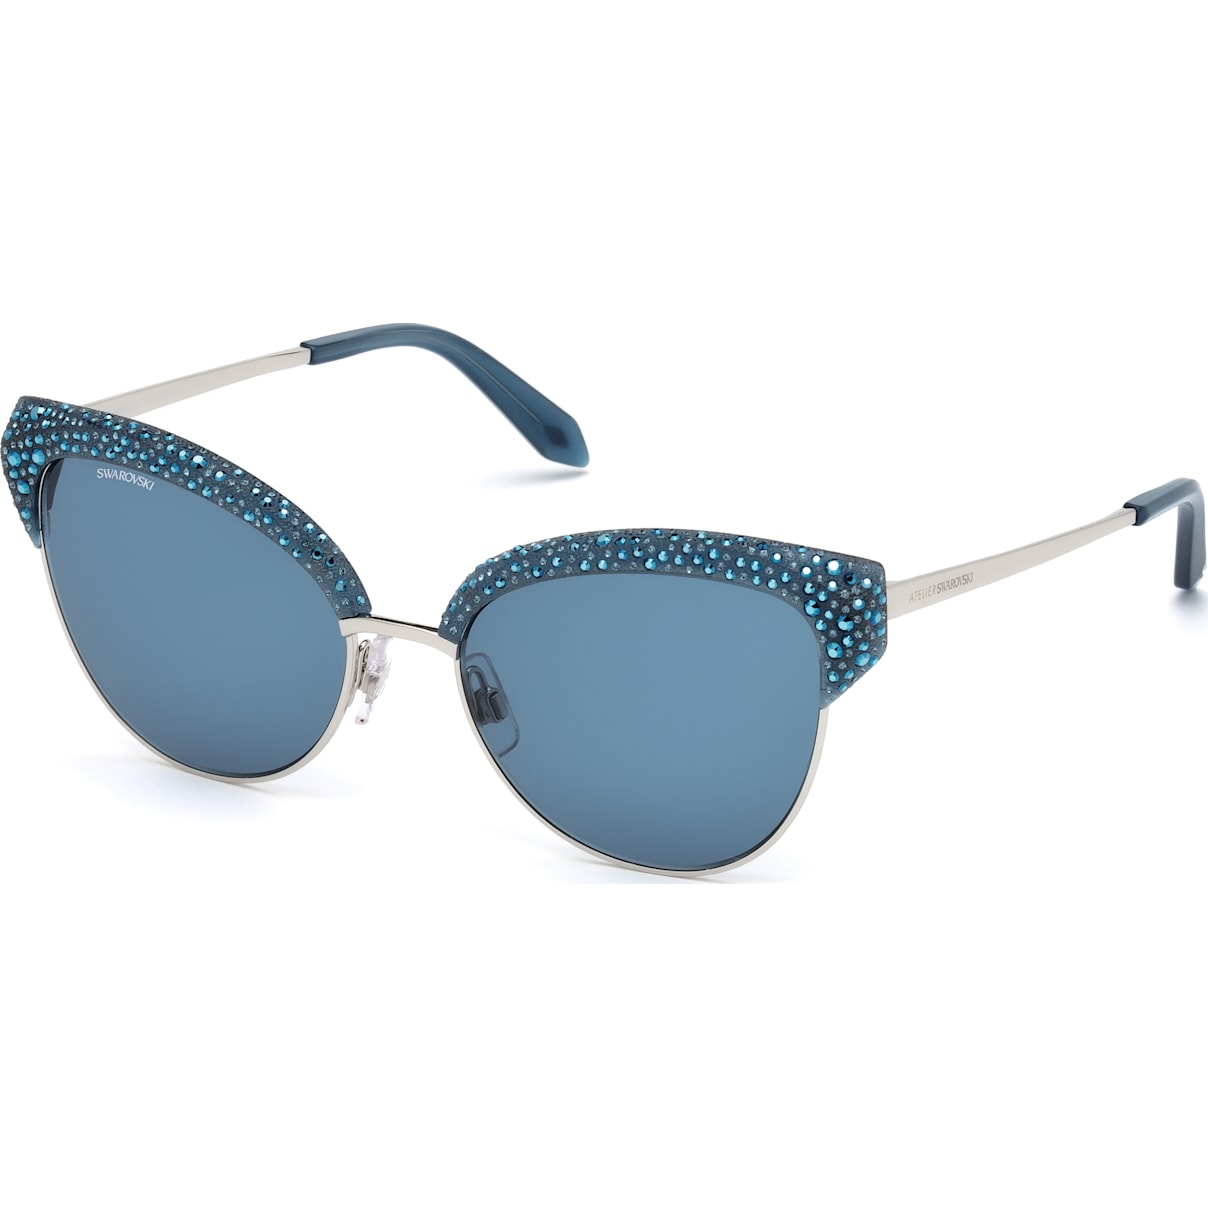 Swarovski Moselle Cat Eye Sunglasses, SK164-P 90X, Opal Blue